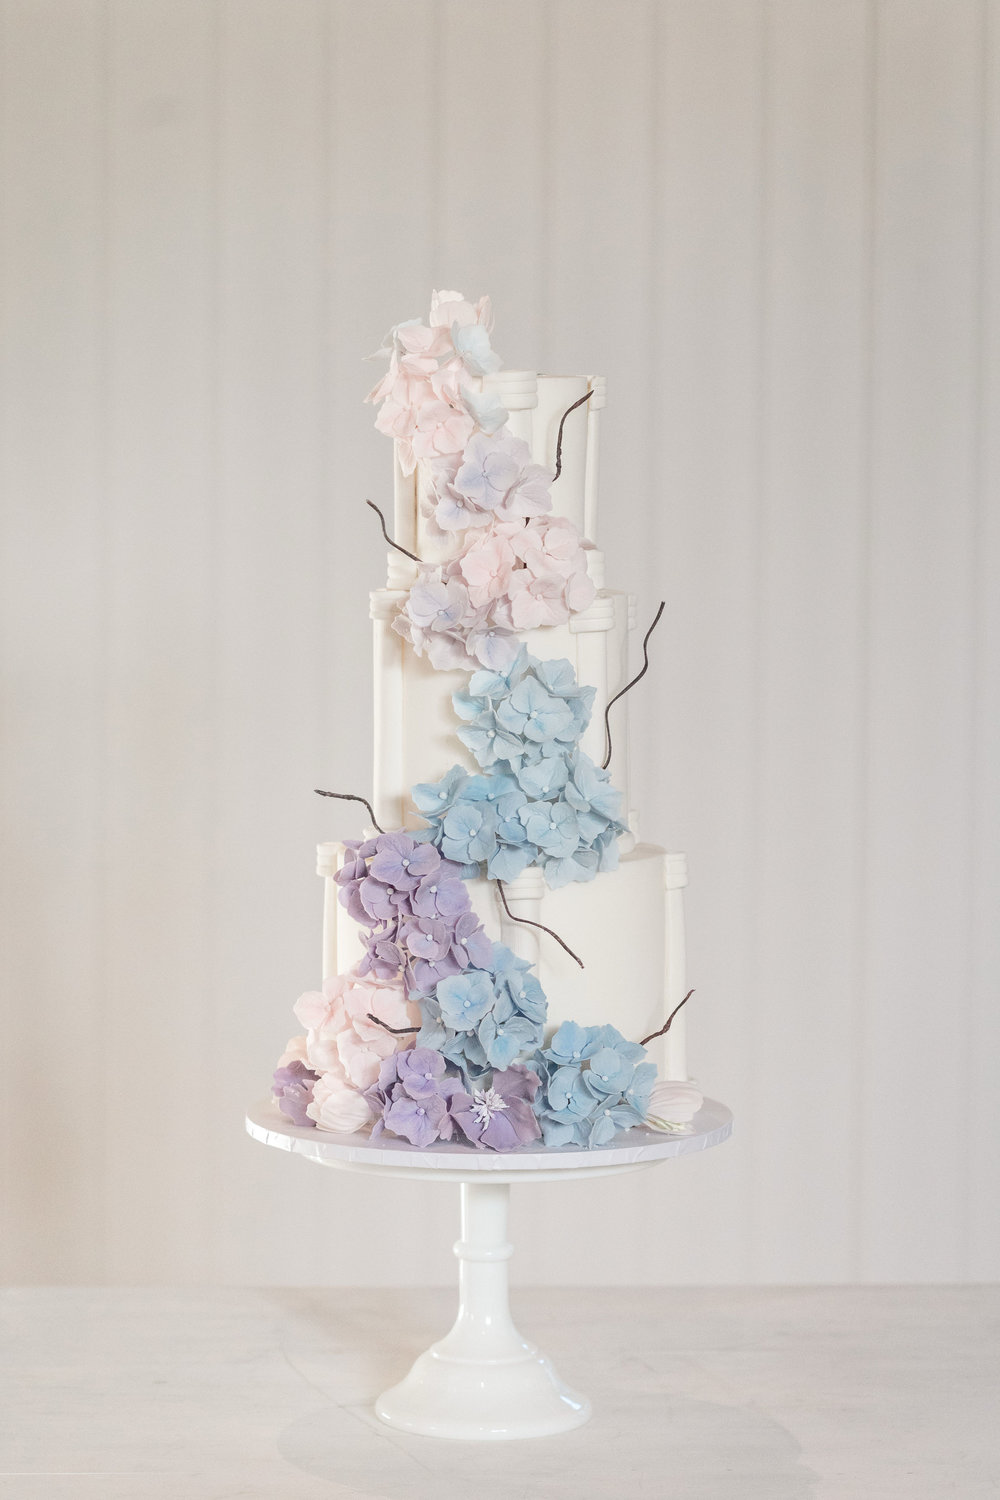 Becky Harley Photography, Cake by Meadowsweet Cakes, Hertfordshire